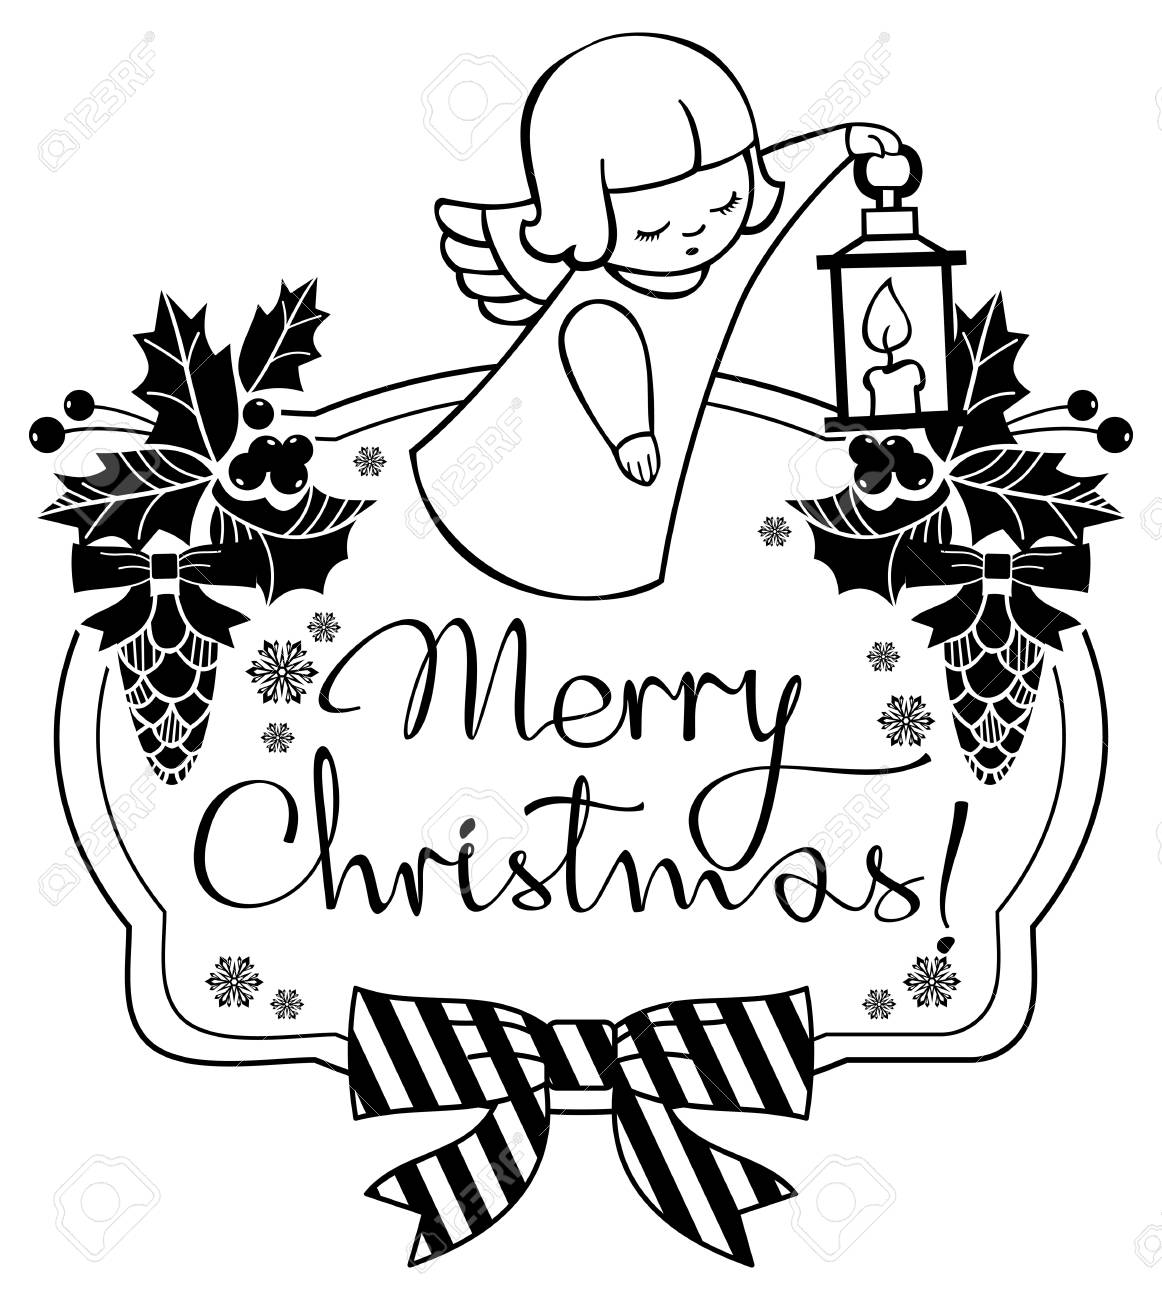 Merry Christmas Images Black And White.Black And White Christmas Label With Angels And Artistic Written